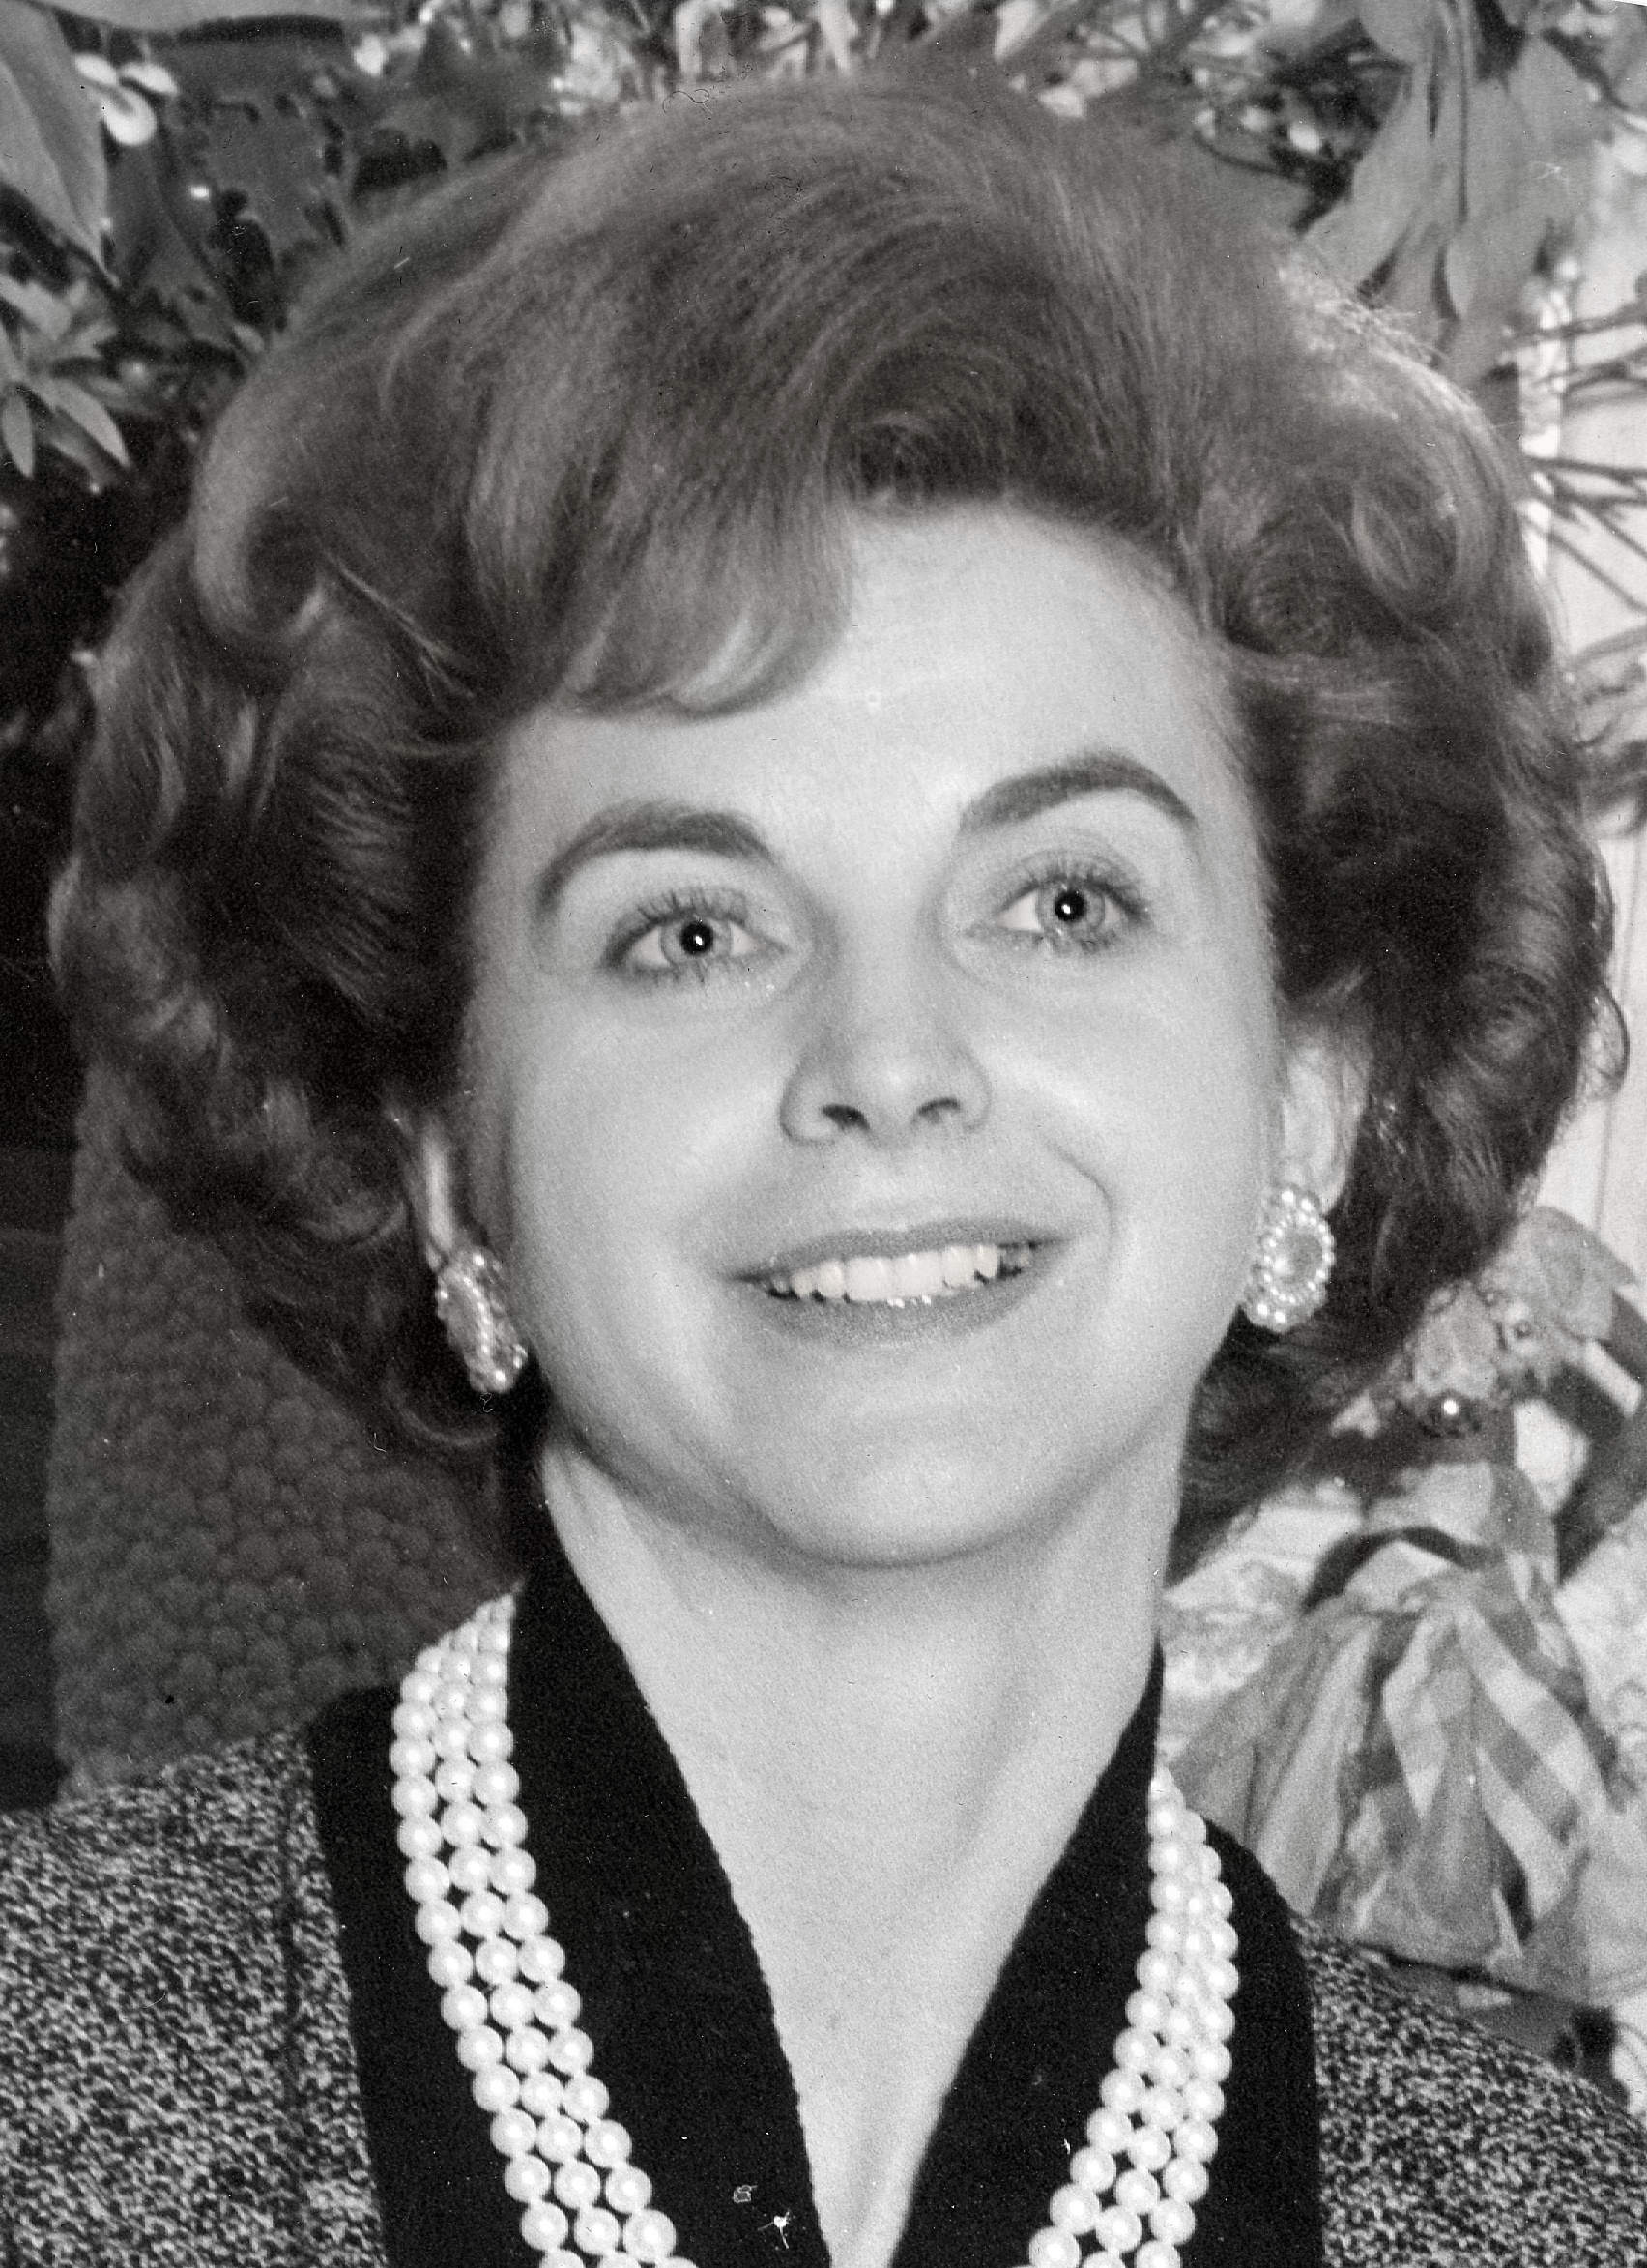 Audrey L. Phillips